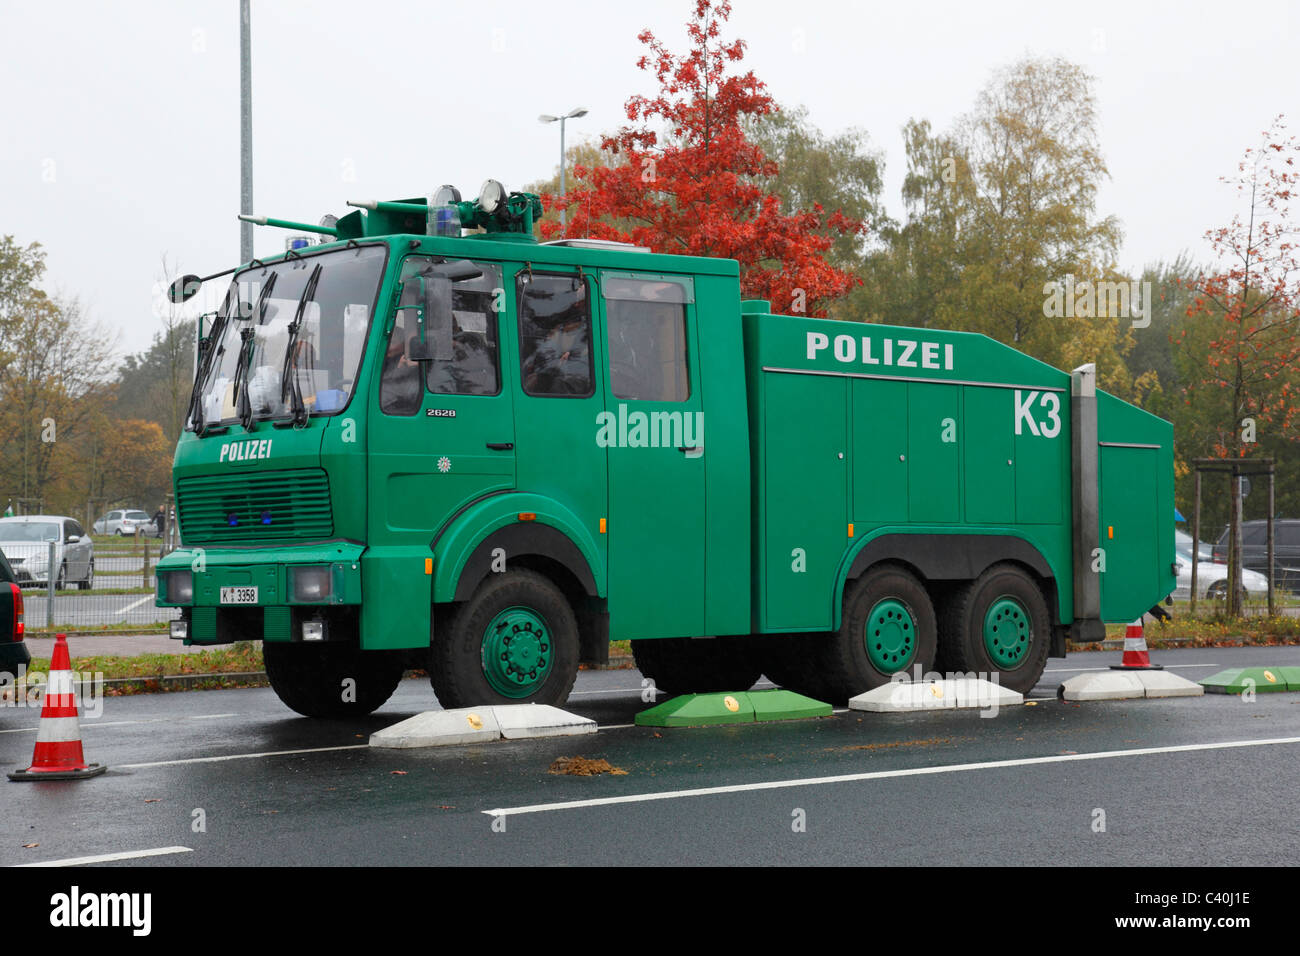 Police, water cannon, football, soccer, demonstrations, power, violence, excesses, riots, Germany - Stock Image